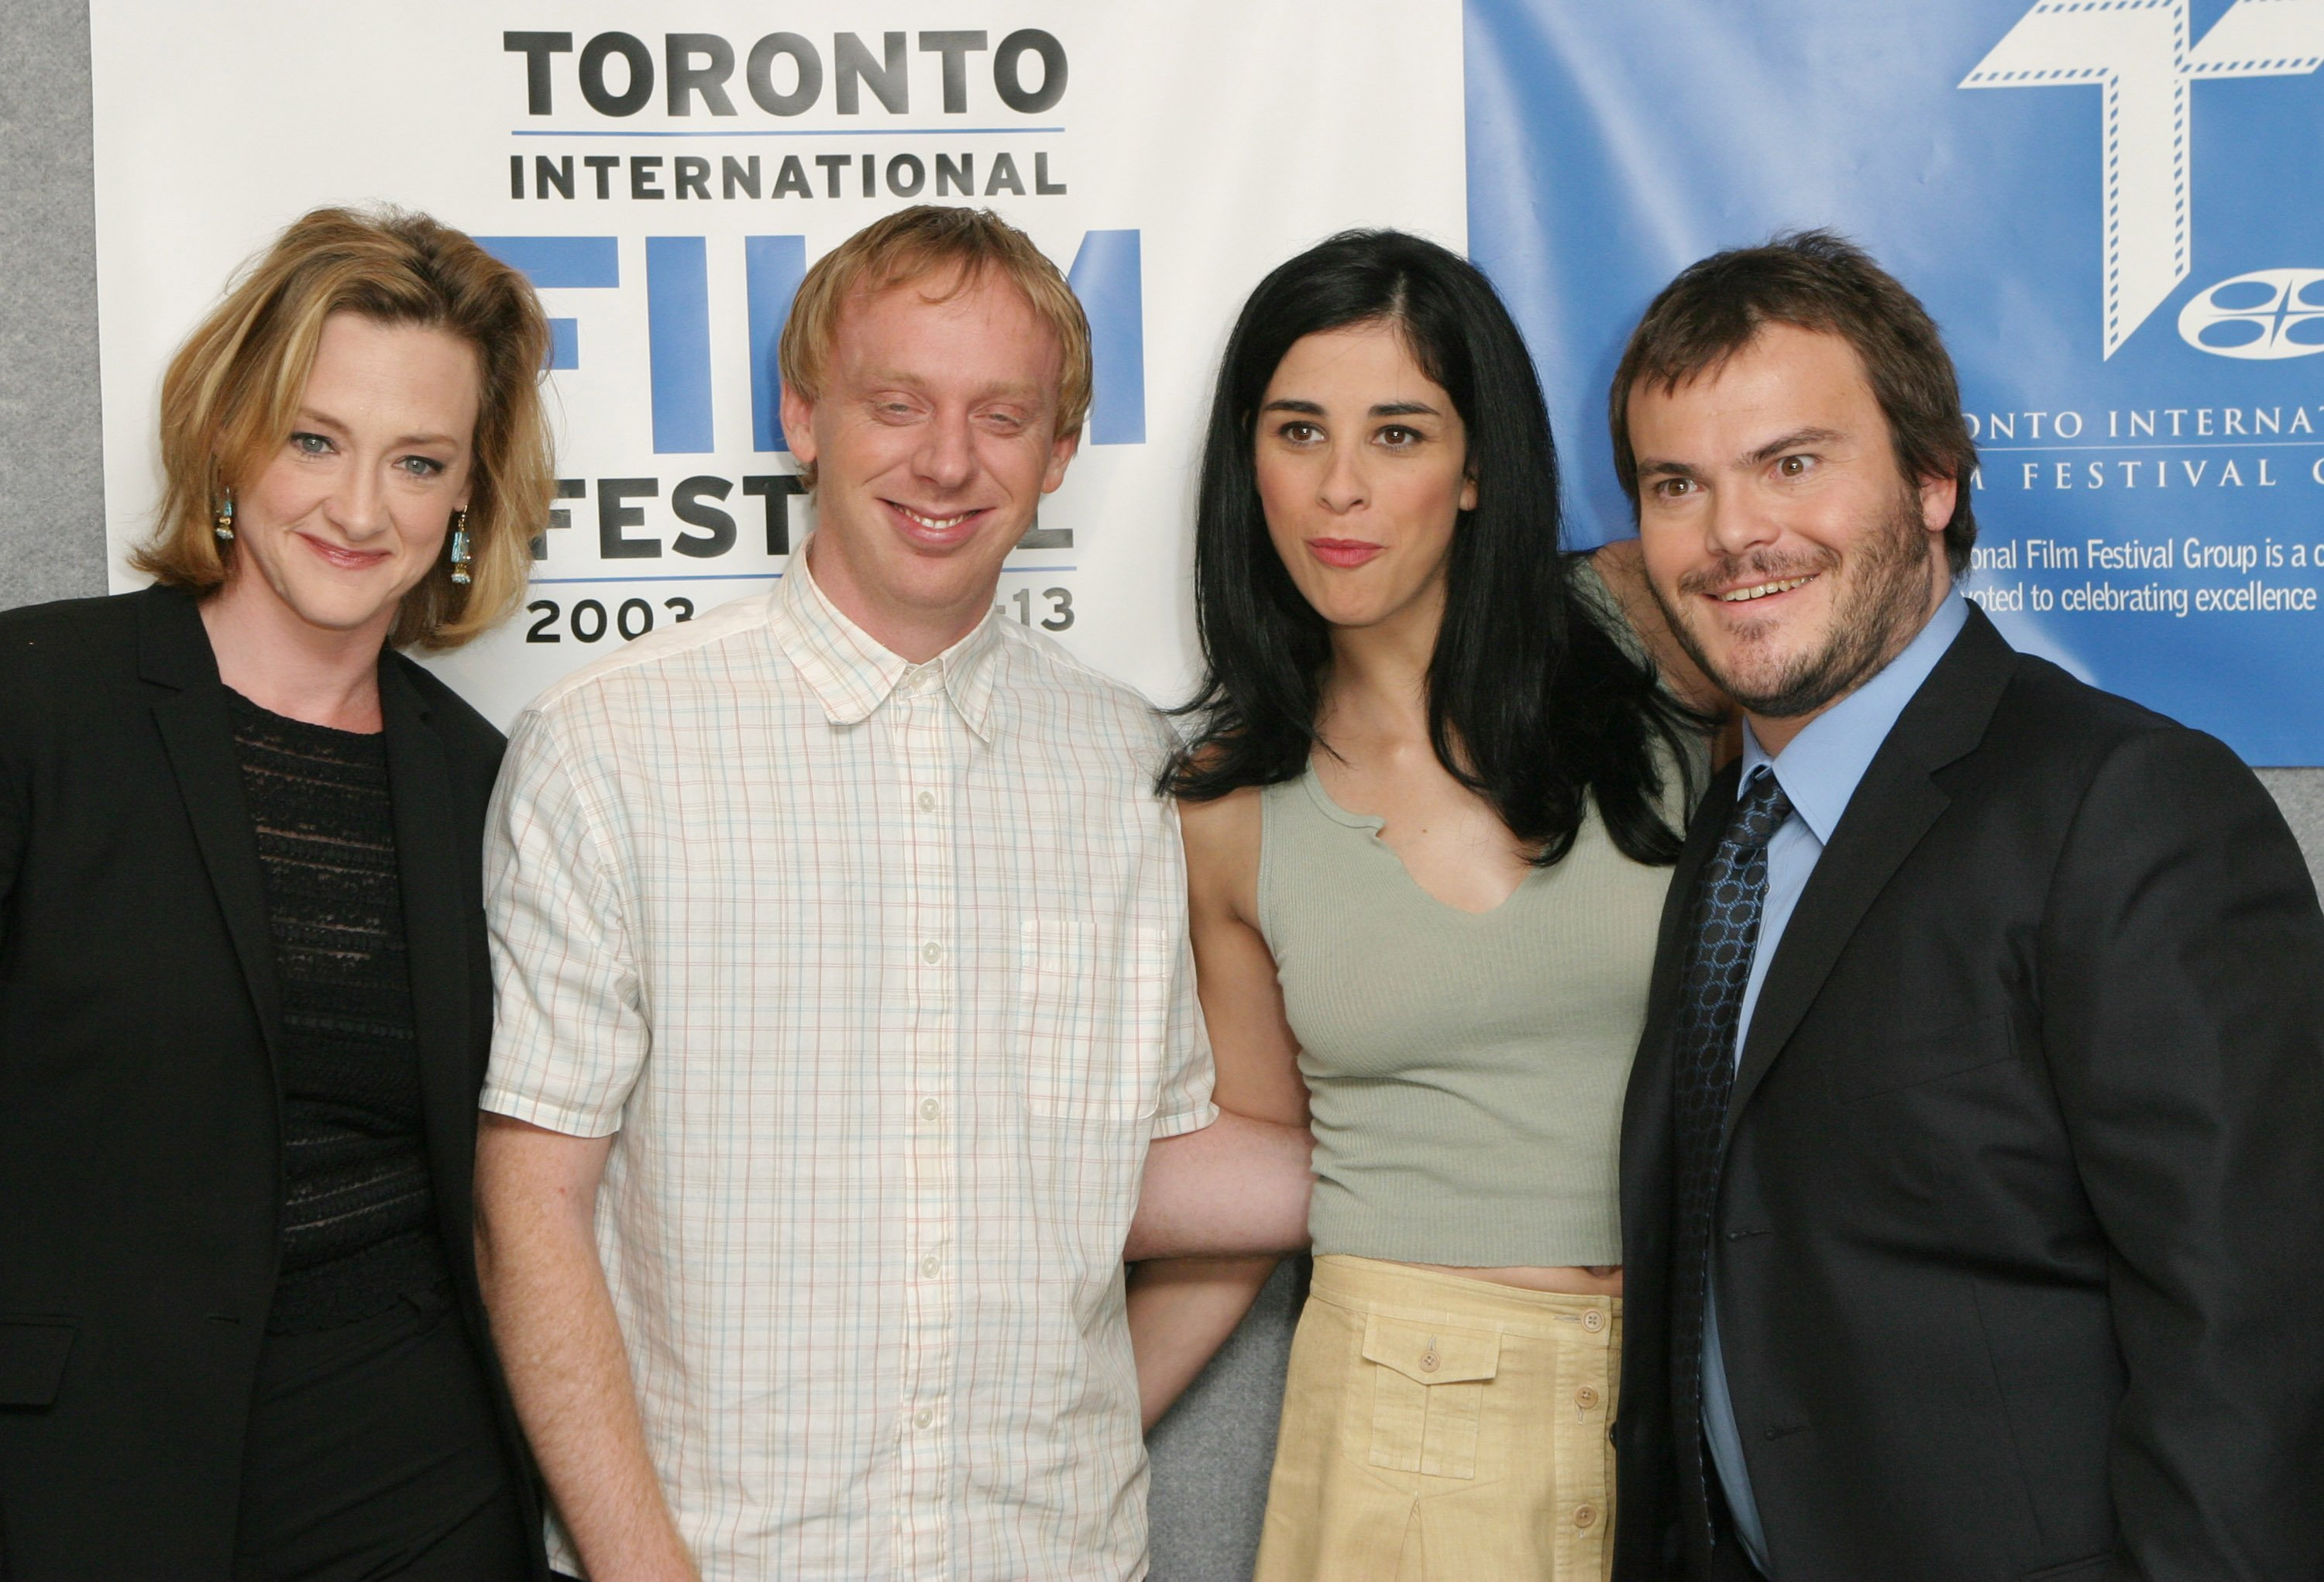 Joan Cusack, Mike White, Sarah Silverman & Jack Black at the Toronto film festival in 2003 | Photo: Getty Images